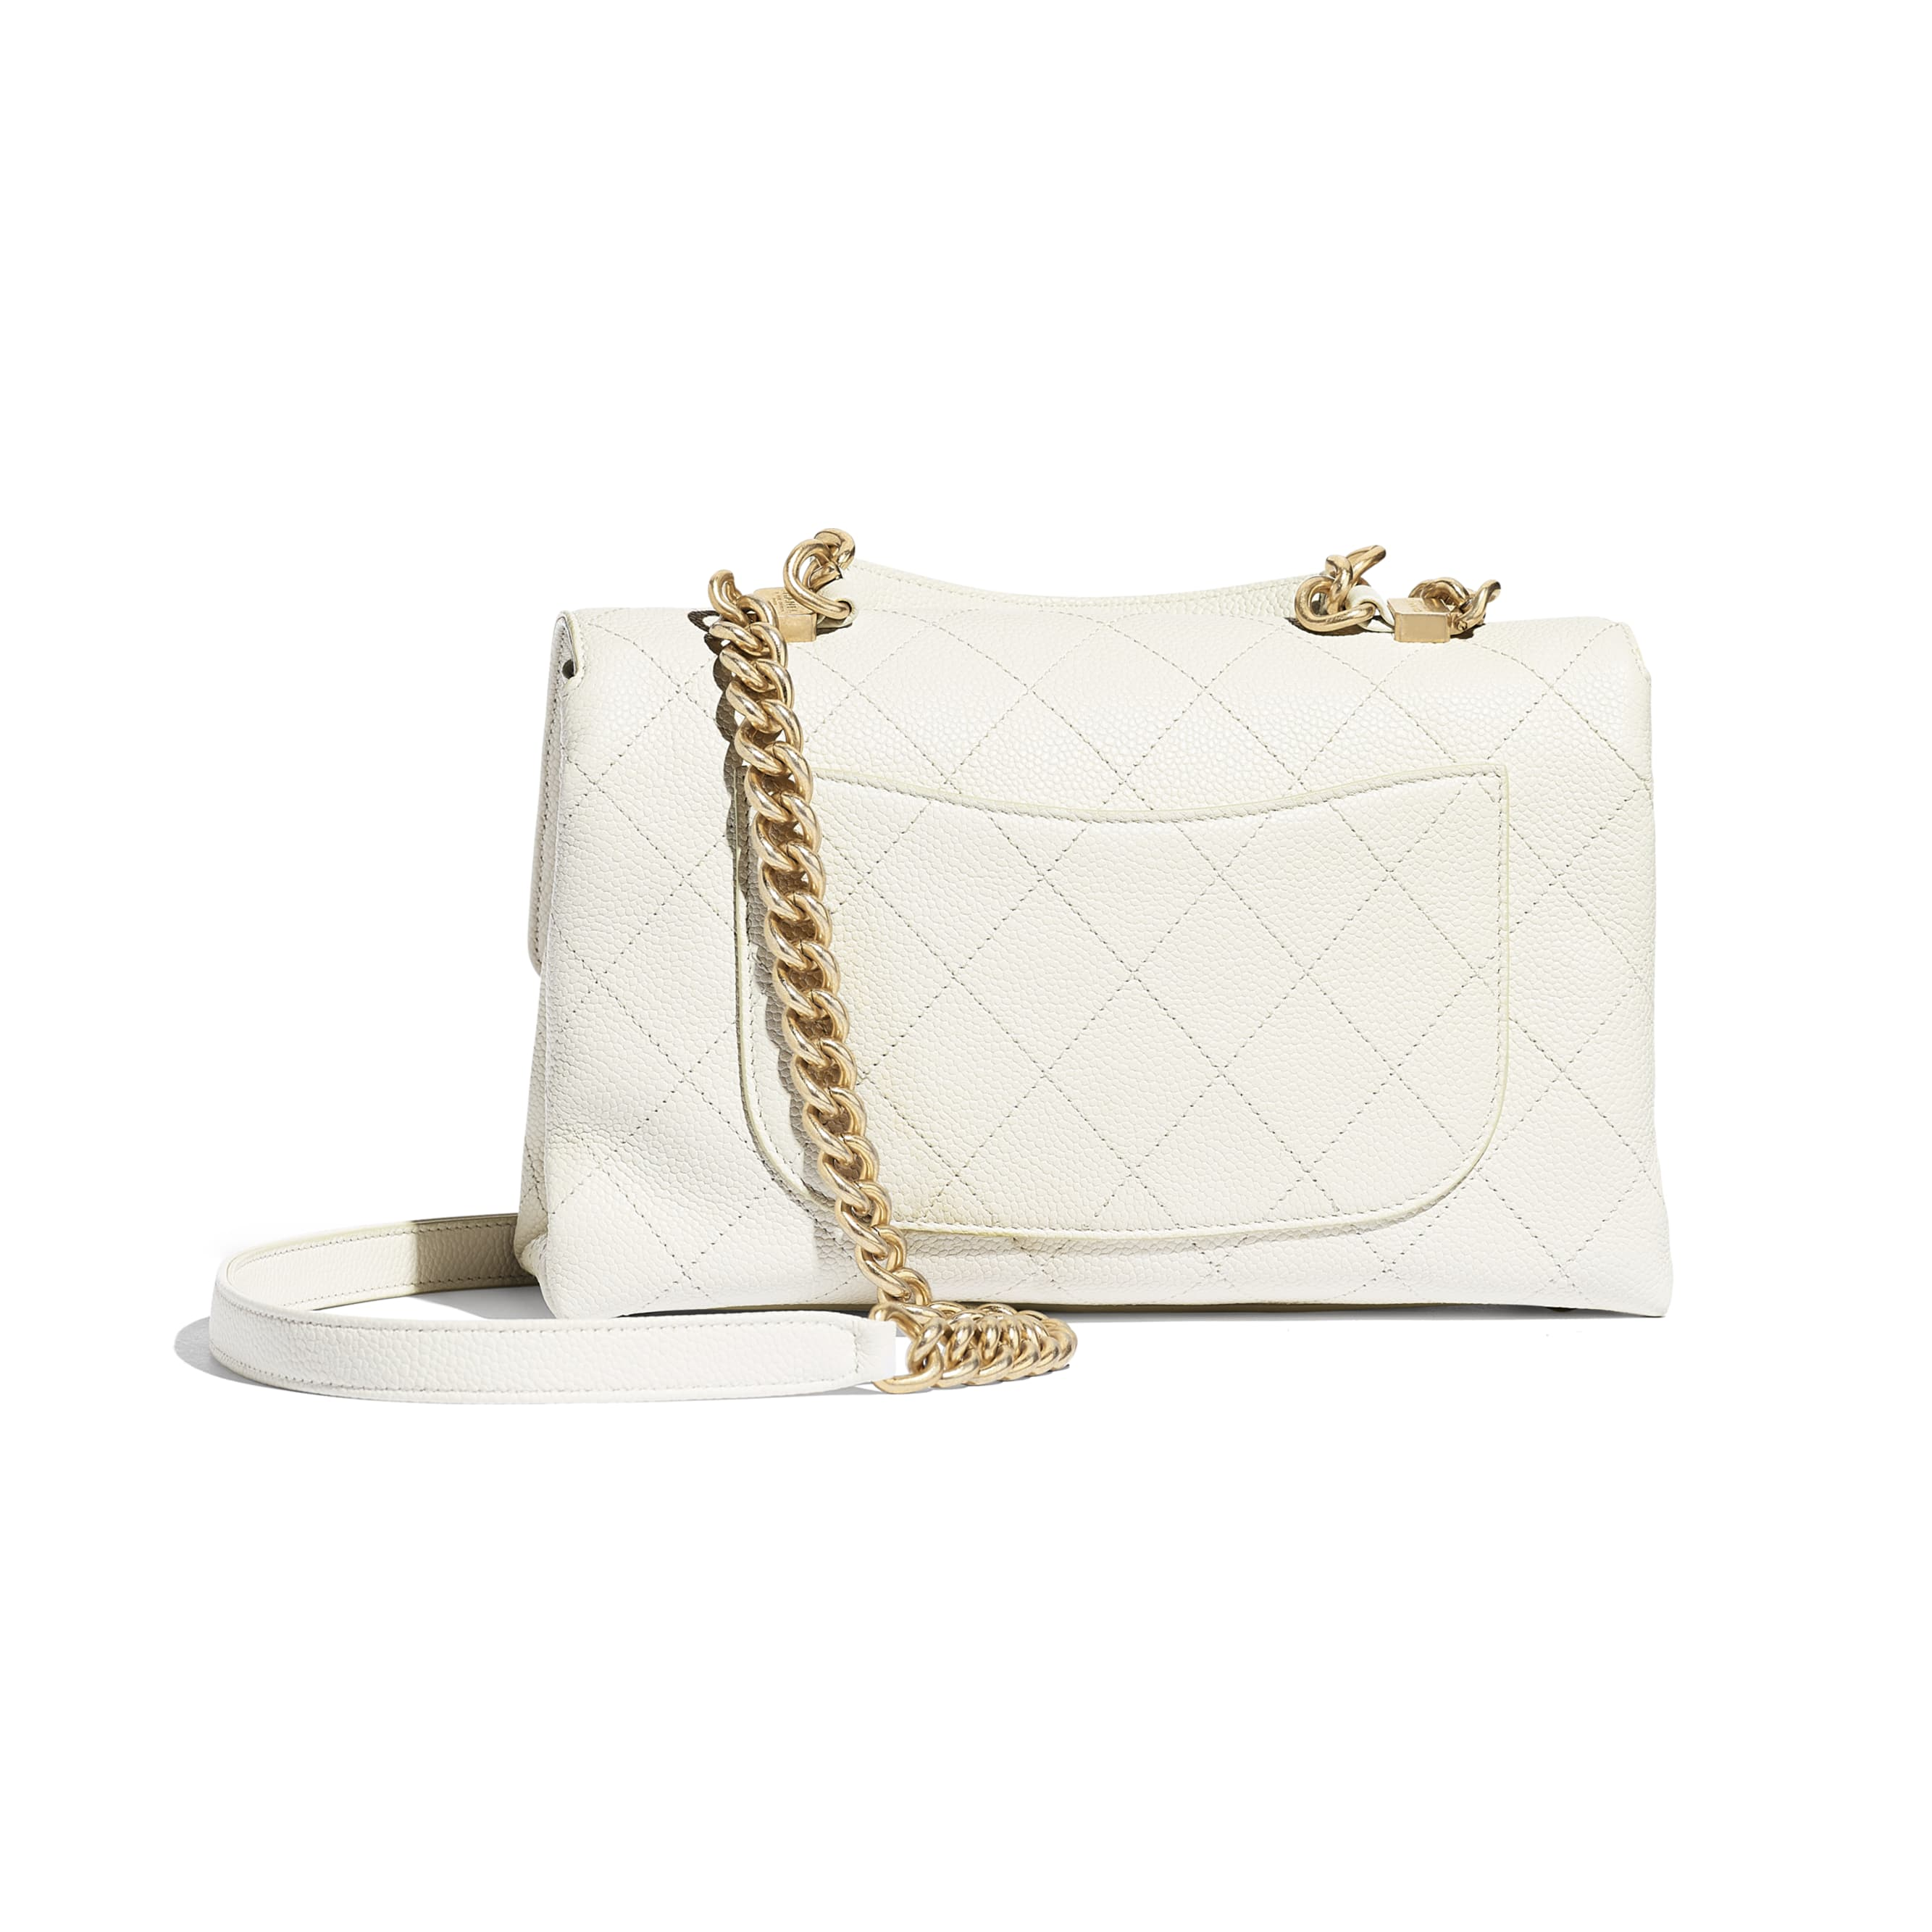 Flap Bag - White - Grained Calfskin & Gold-Tone Metal - Alternative view - see standard sized version